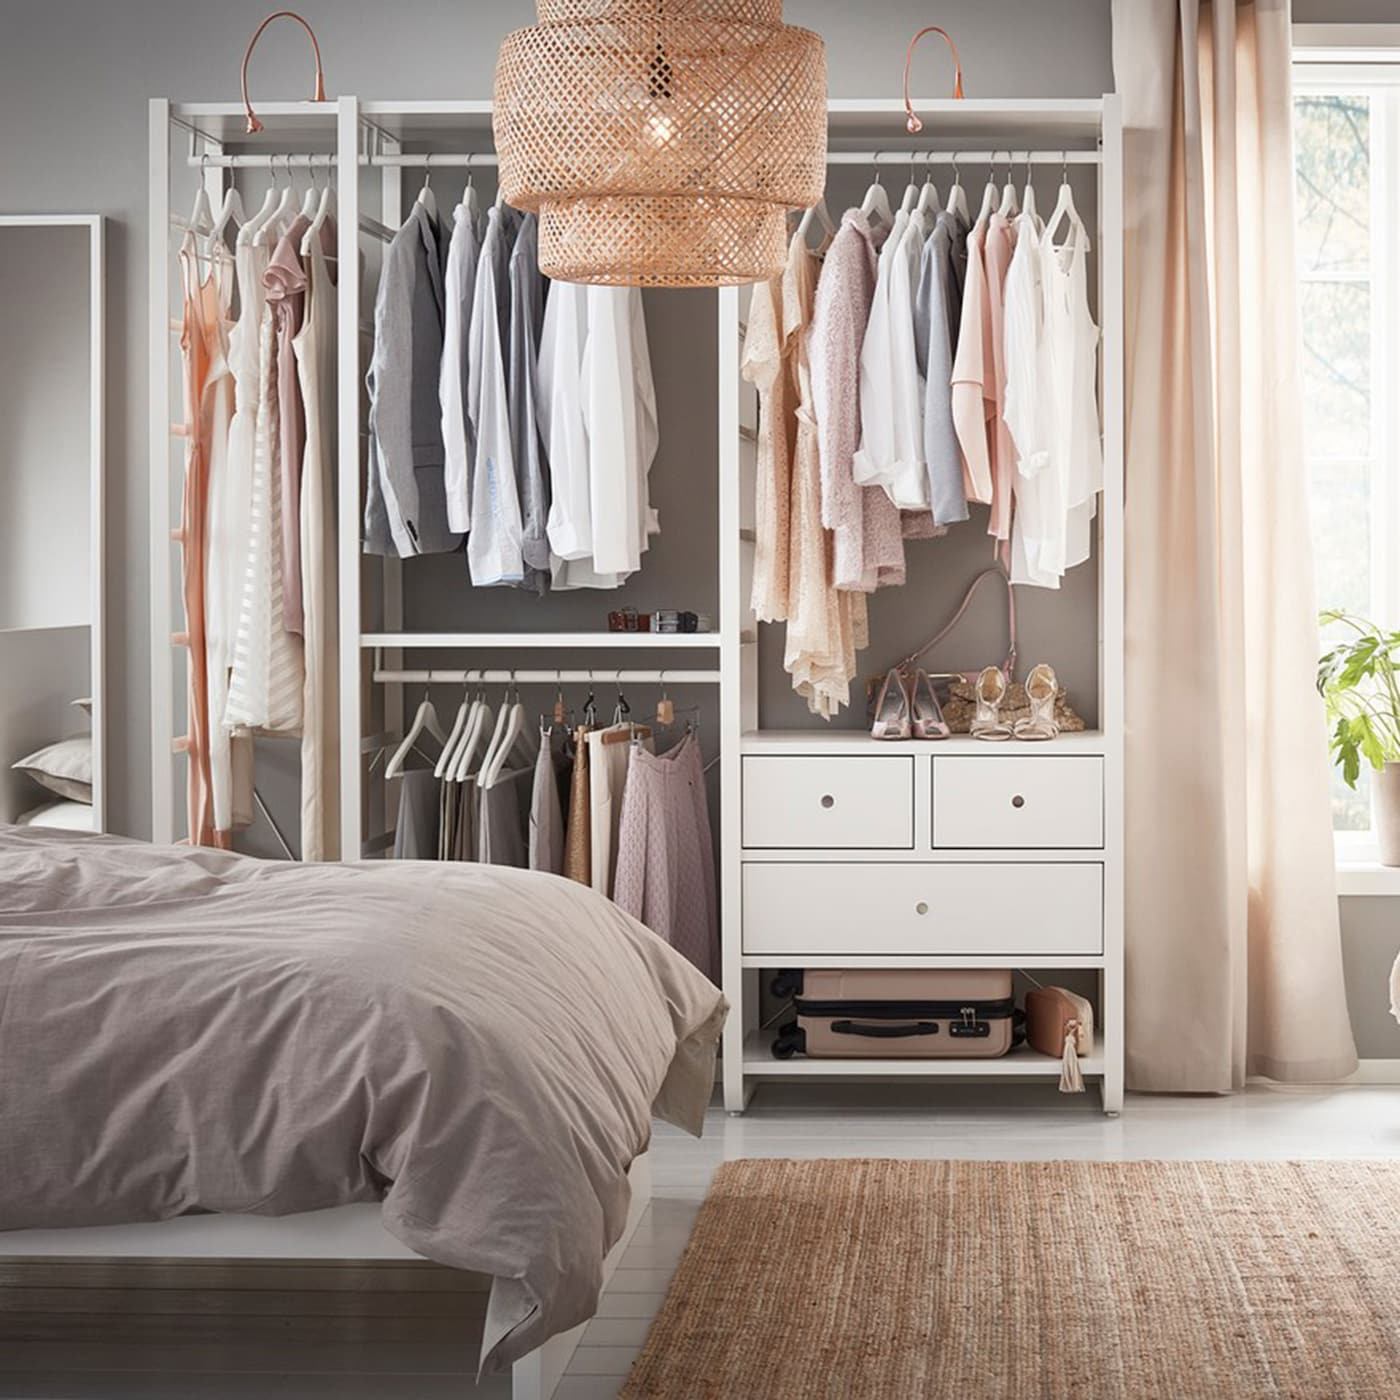 Ikea 2010 Bedroom Design Examples: Your Open Wardrobe, Made Easy And Elegant